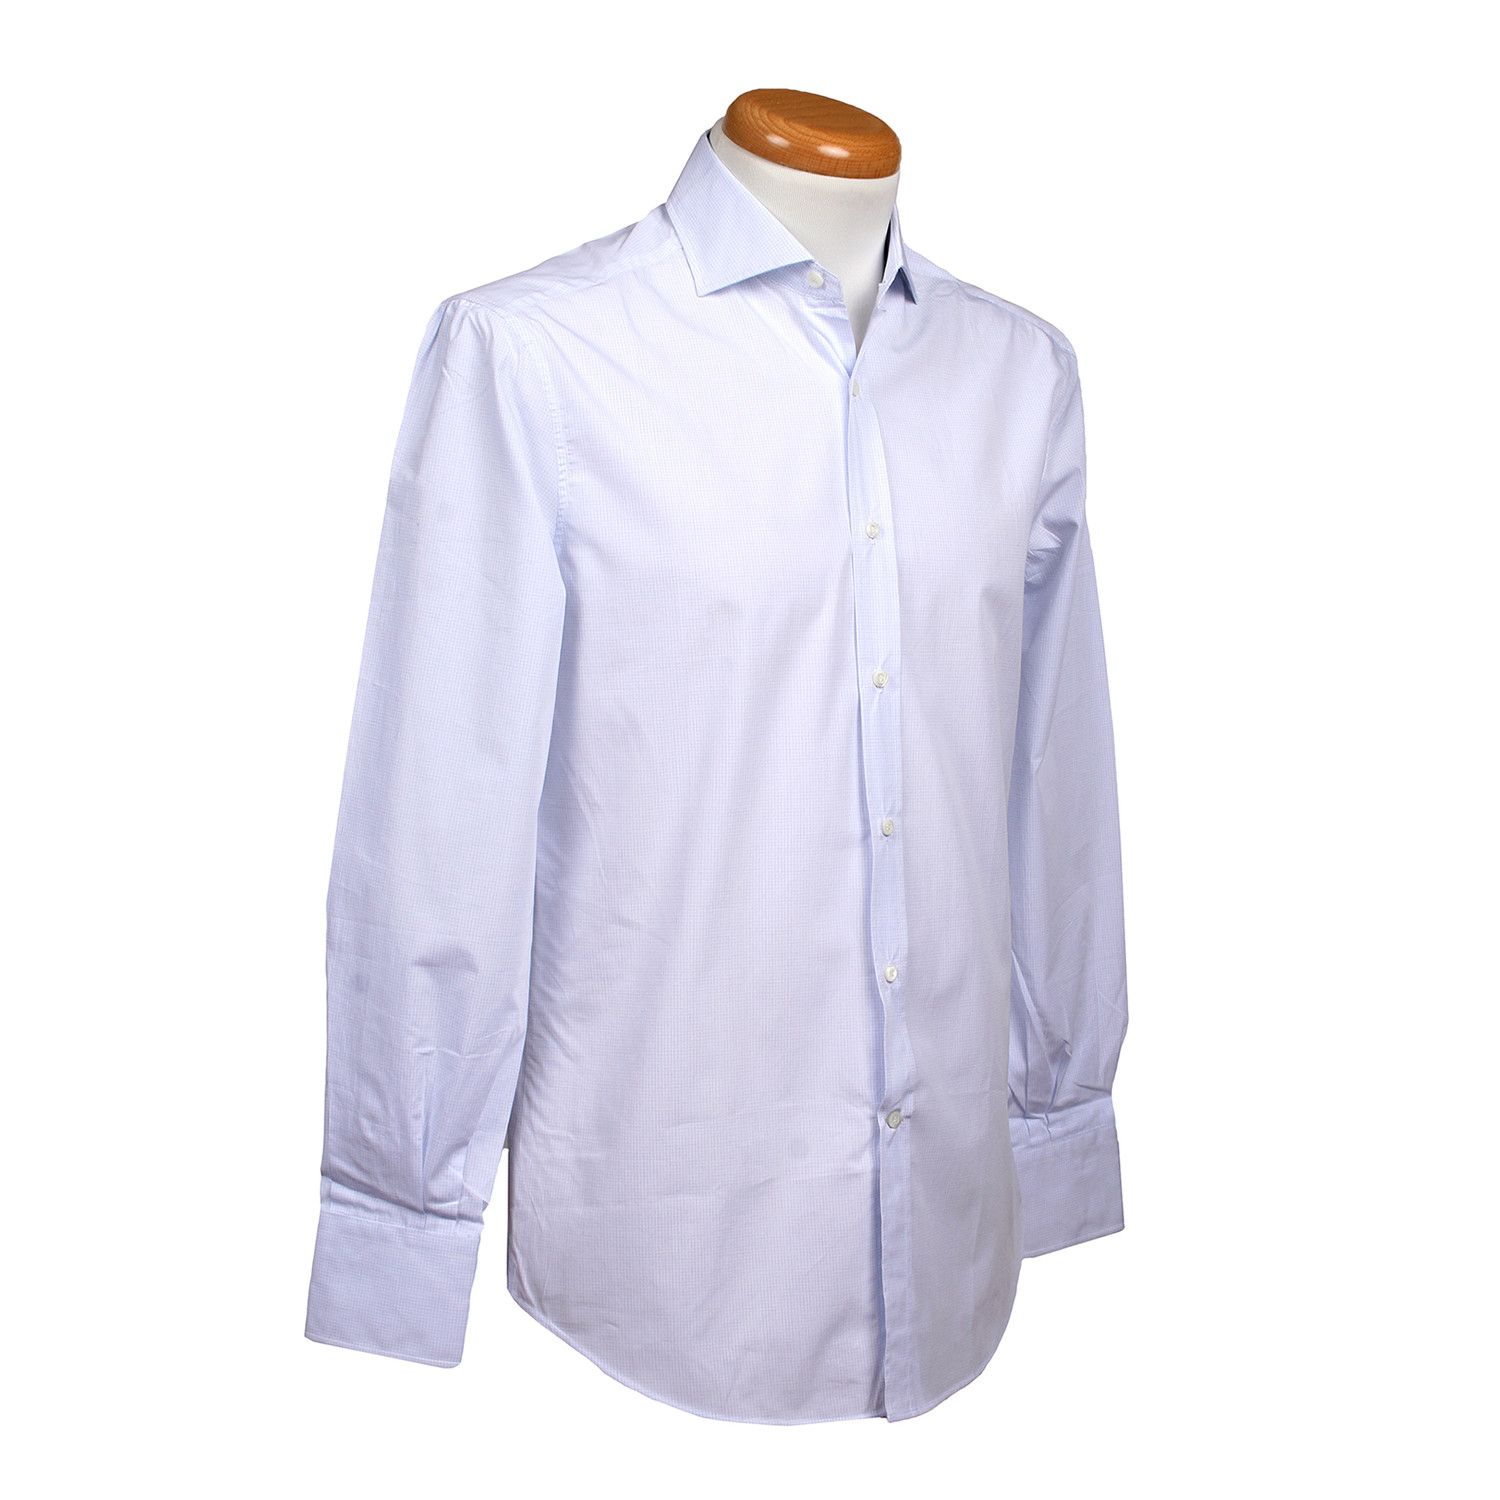 Basic Fit Long Sleeve Shirt White Long Sleeve Shirts